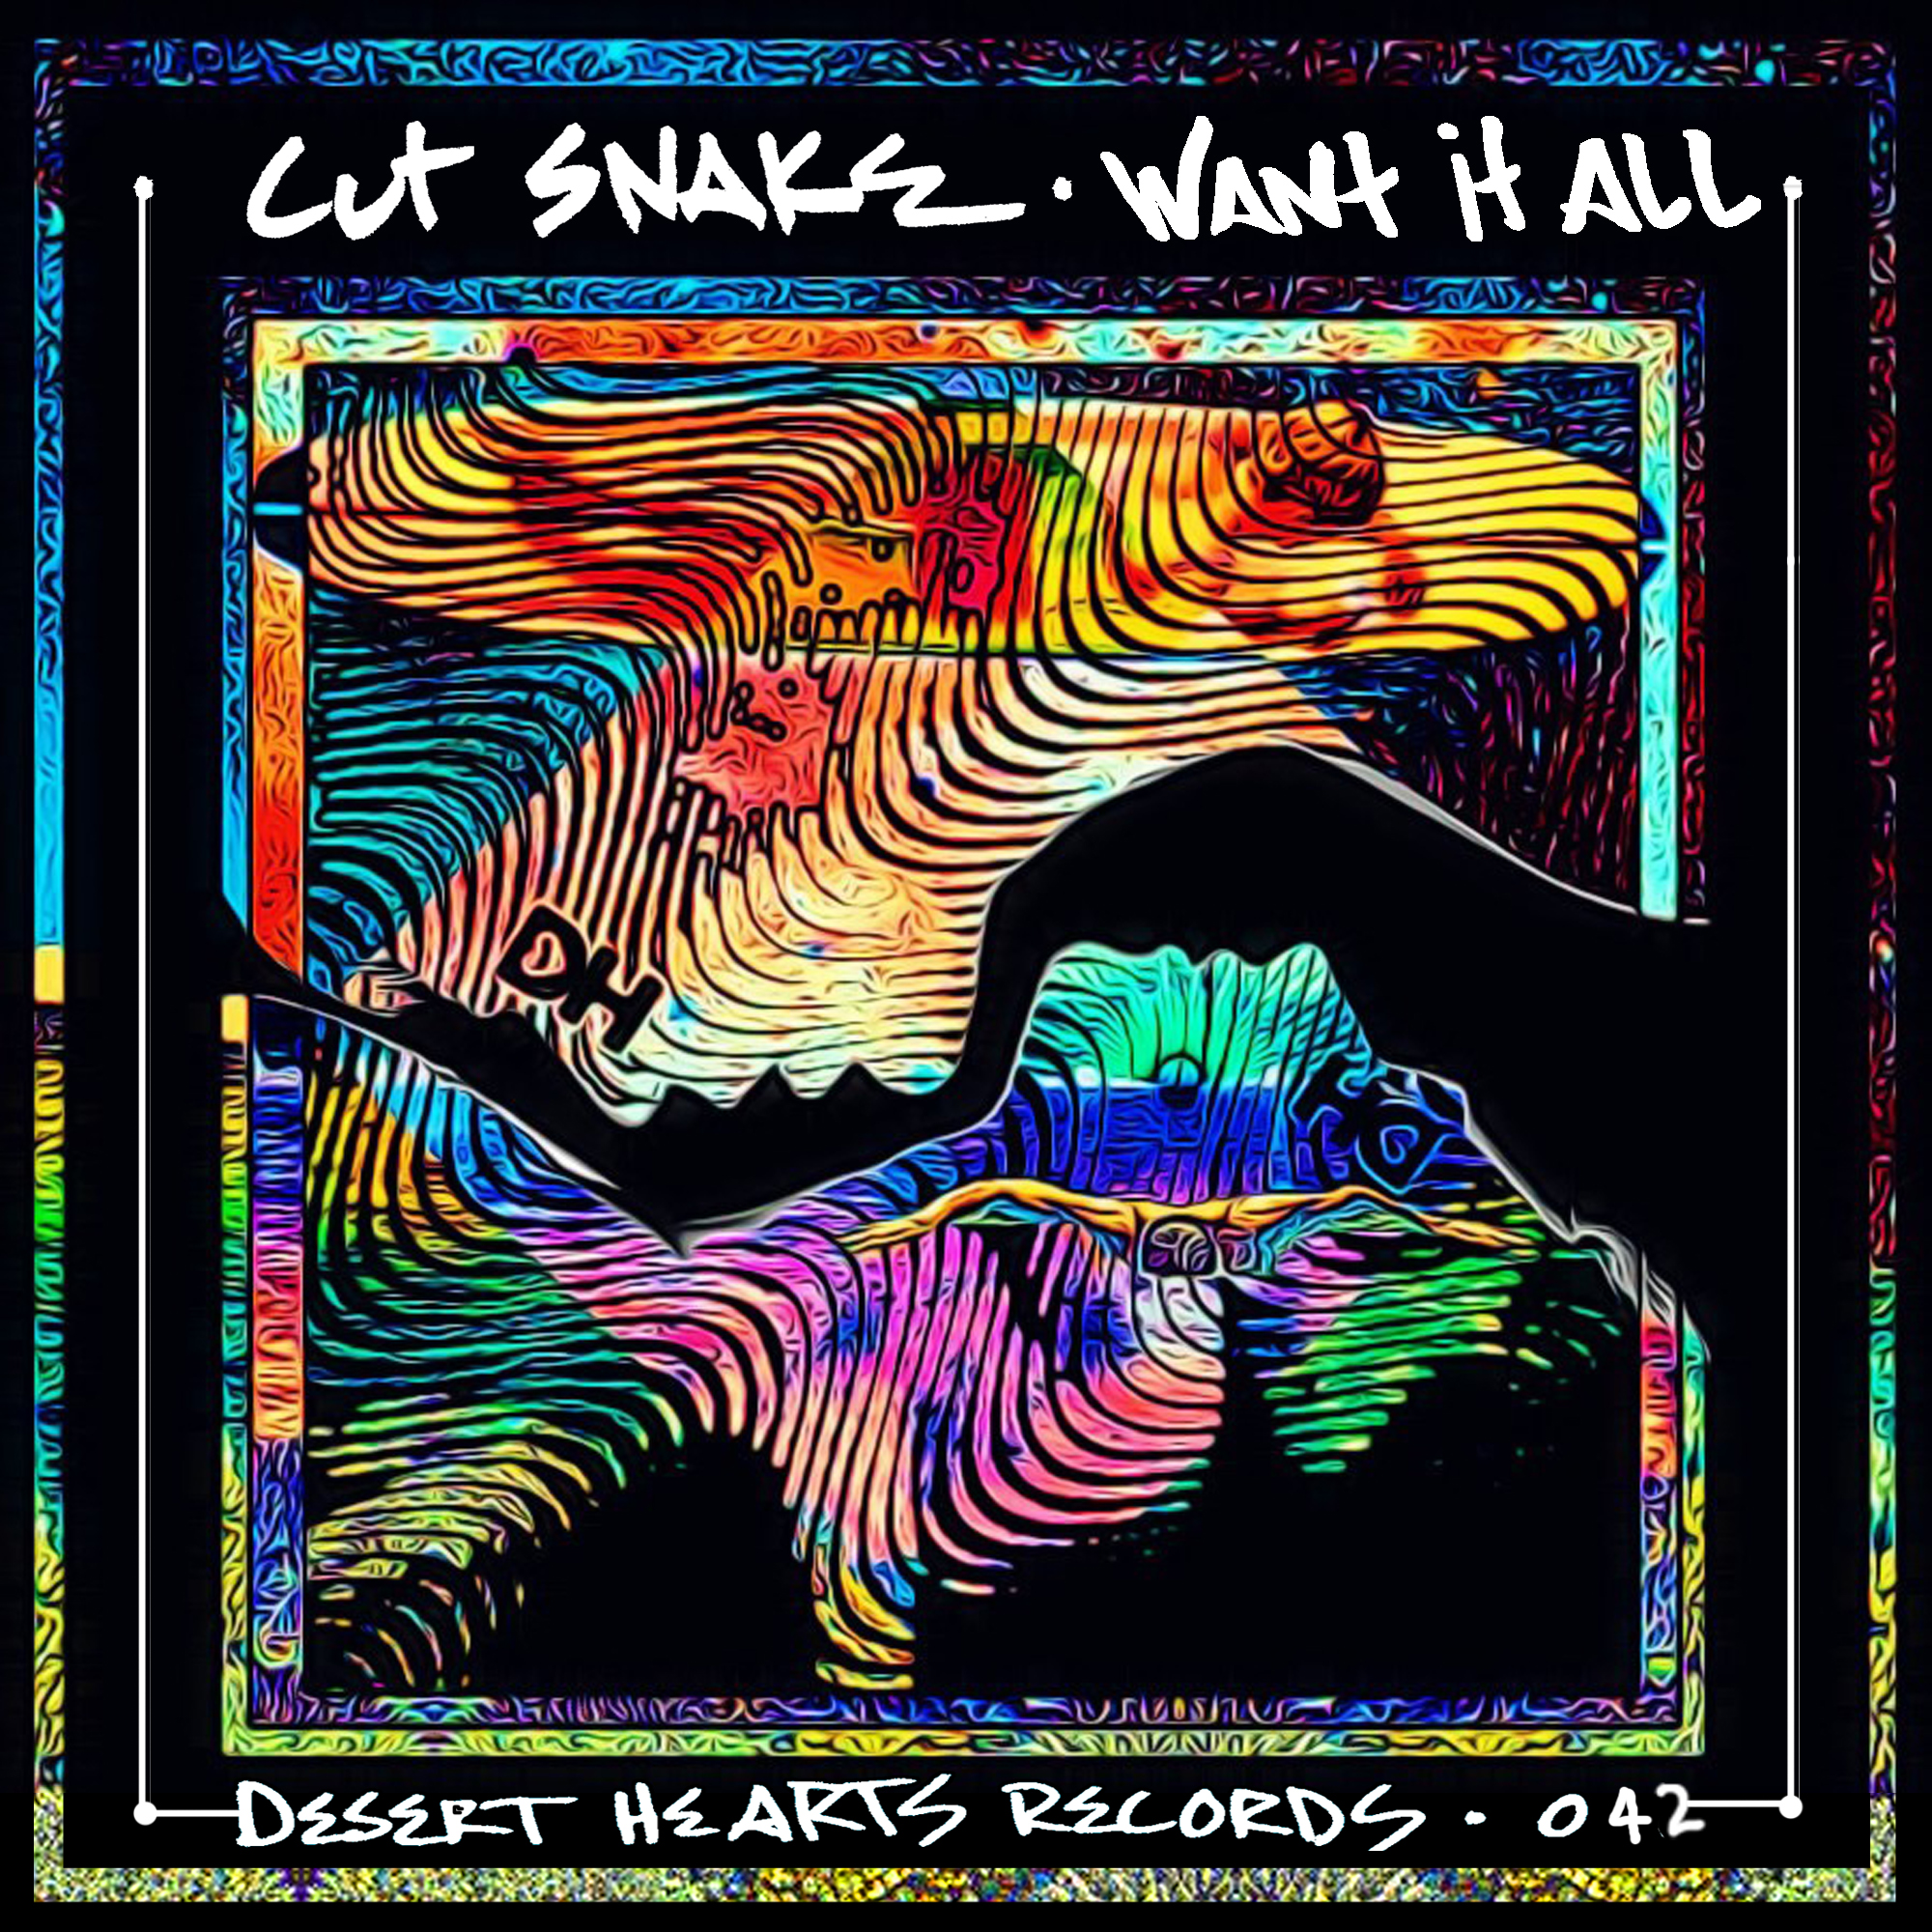 Cutsnake - Want It All [Square].jpg